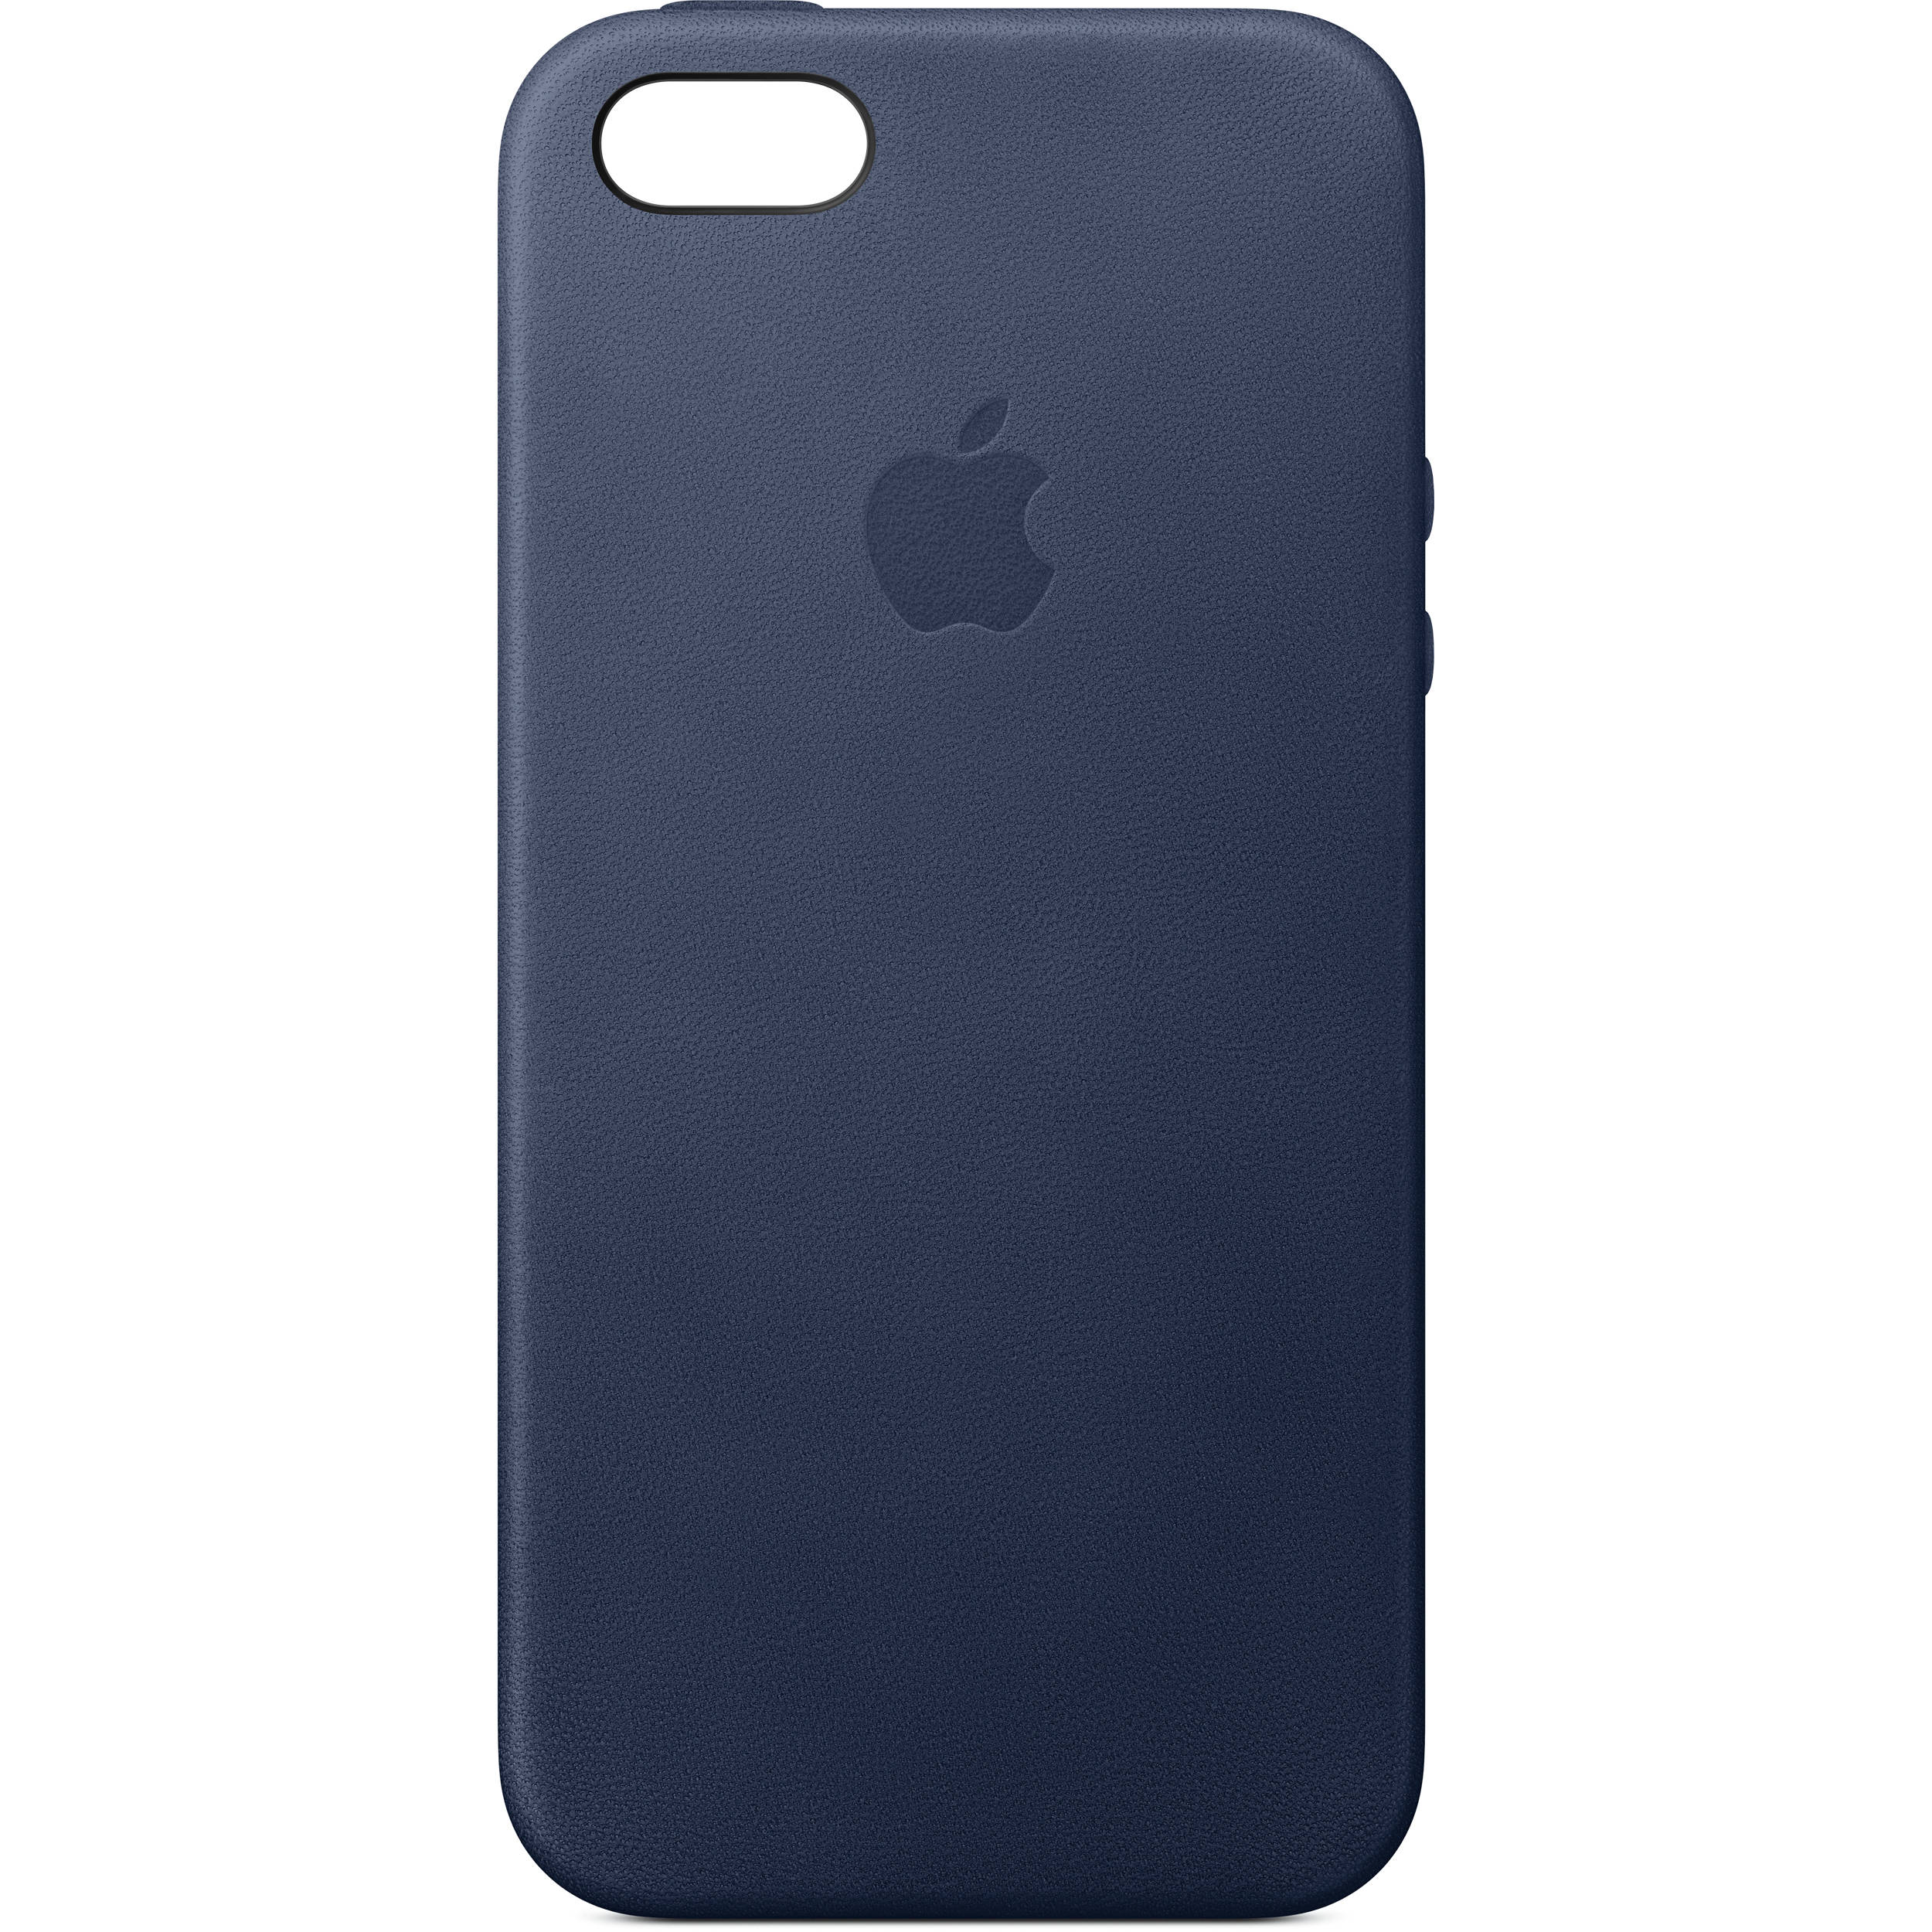 apple iphone 5 5s se leather case midnight blue mmhg2zm. Black Bedroom Furniture Sets. Home Design Ideas